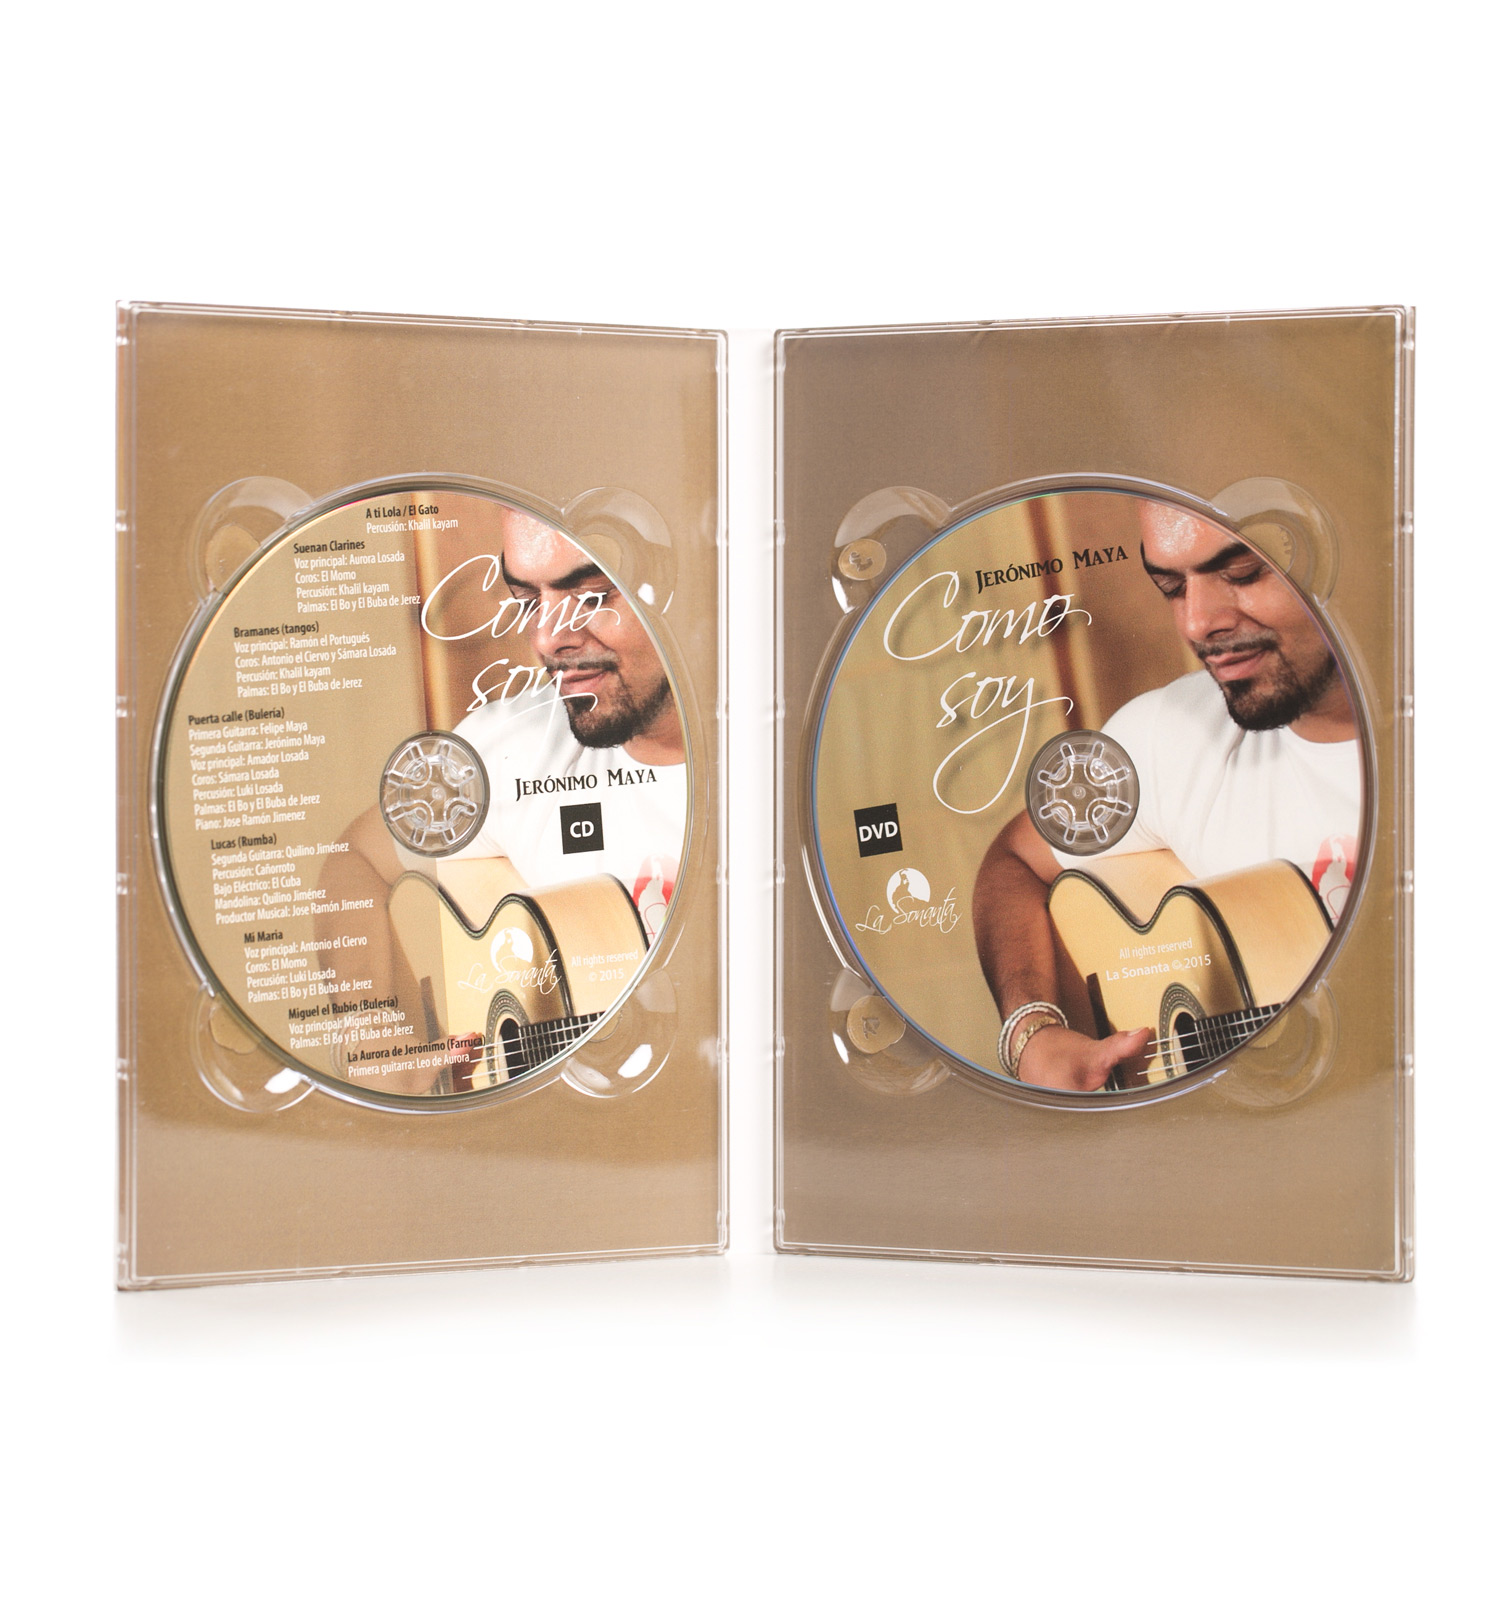 Jeronimo Maya 'Como Soy' (CD+ DVD)